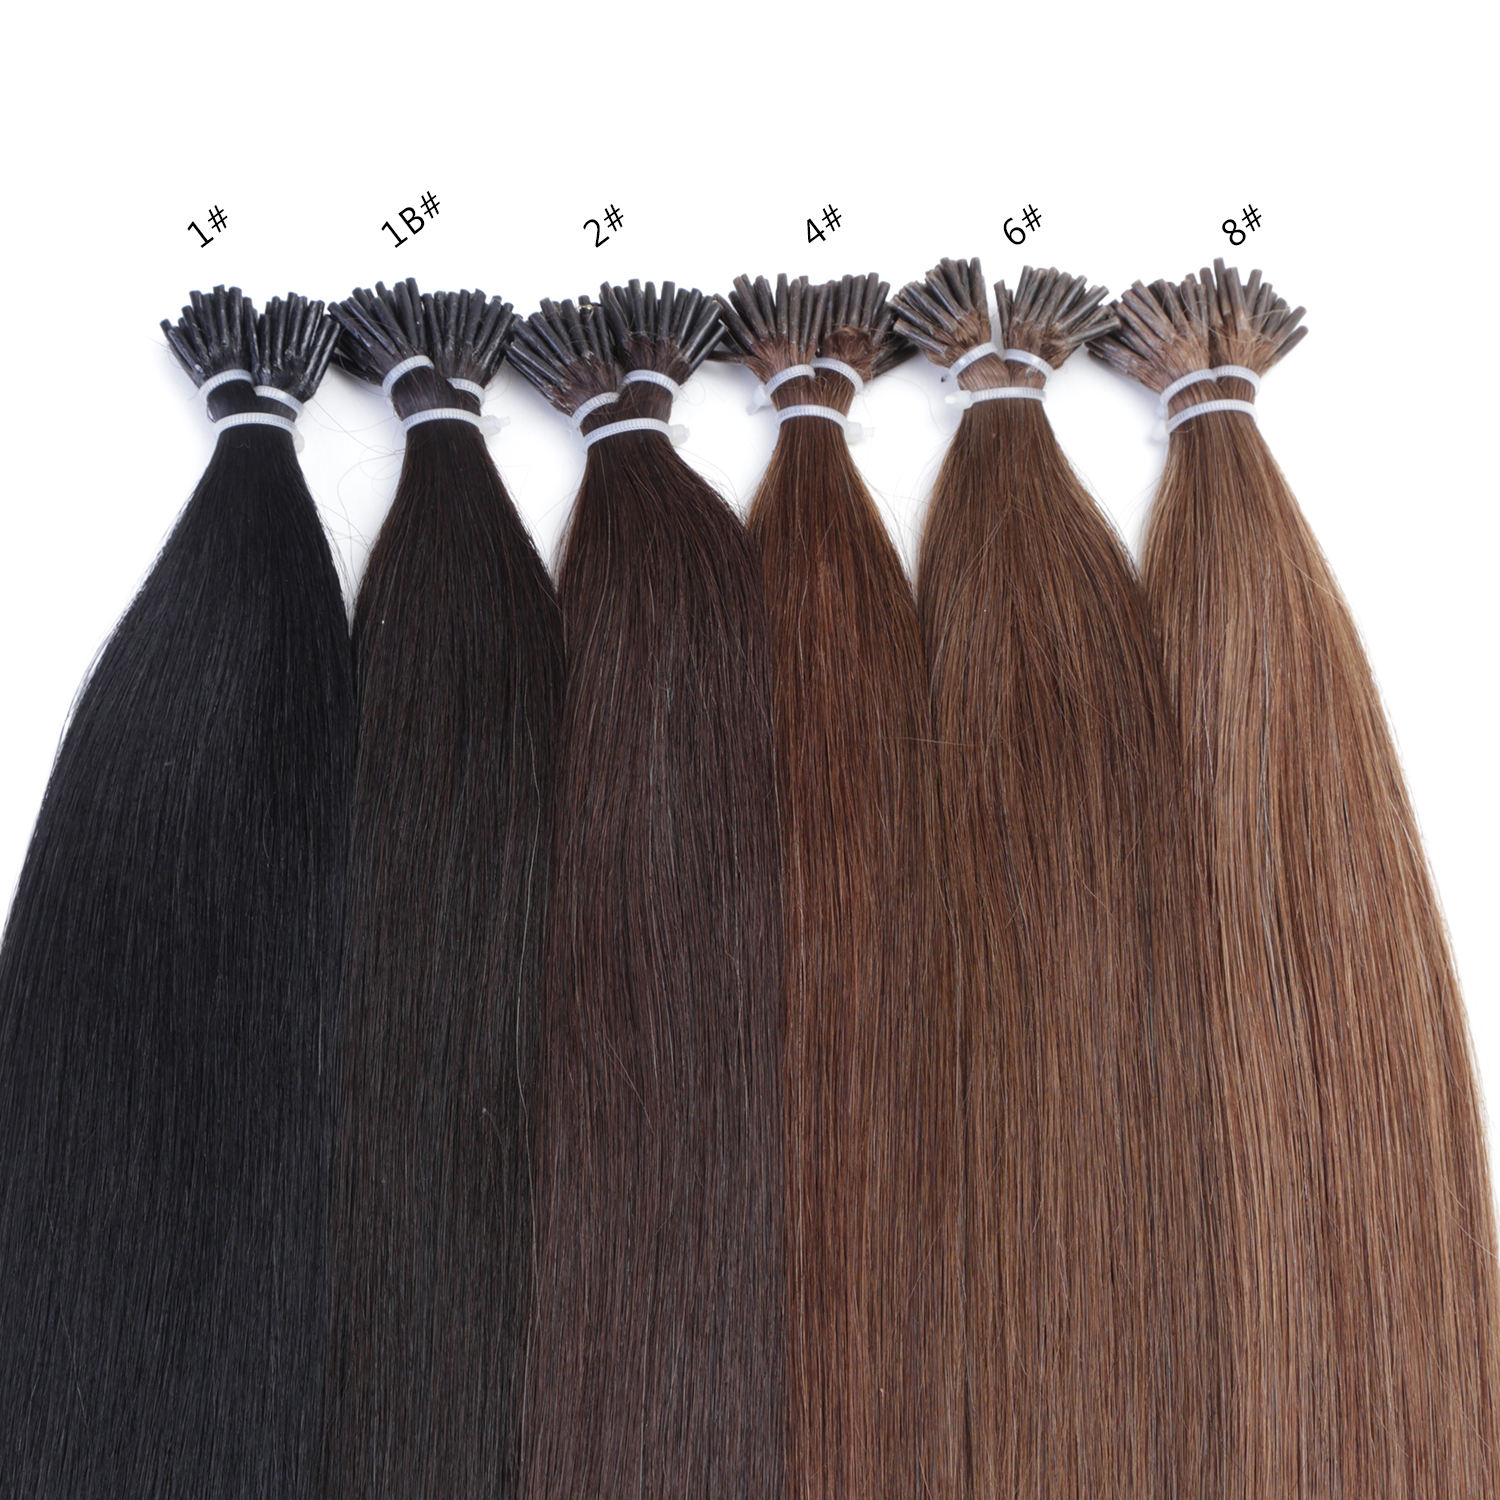 Neitsi 100%Human Hair Double Drawn Wholesale Italian Keratin U tip/Flat tip/I Tip Hair Extensions